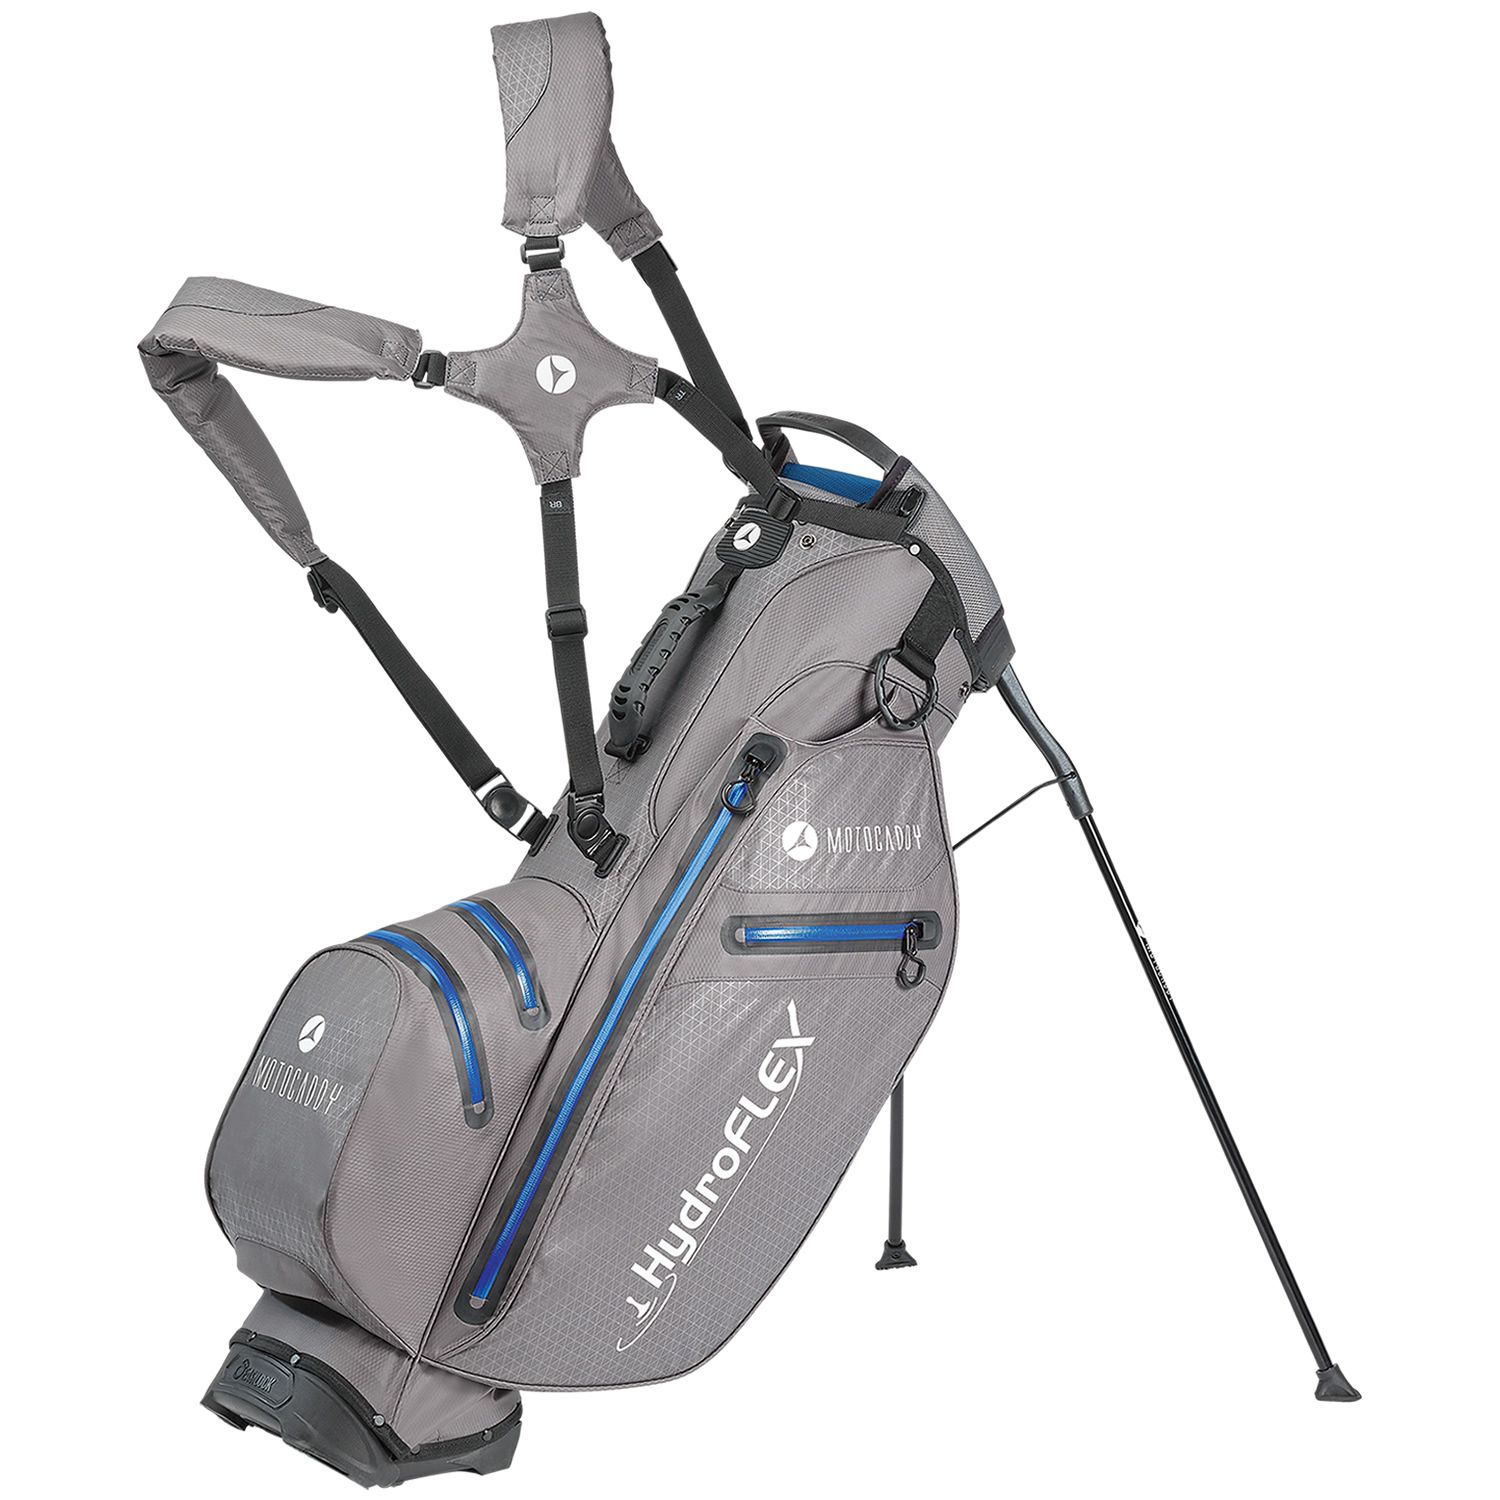 Motocaddy 2020 Hydroflex Waterproof Golf Stand Bag